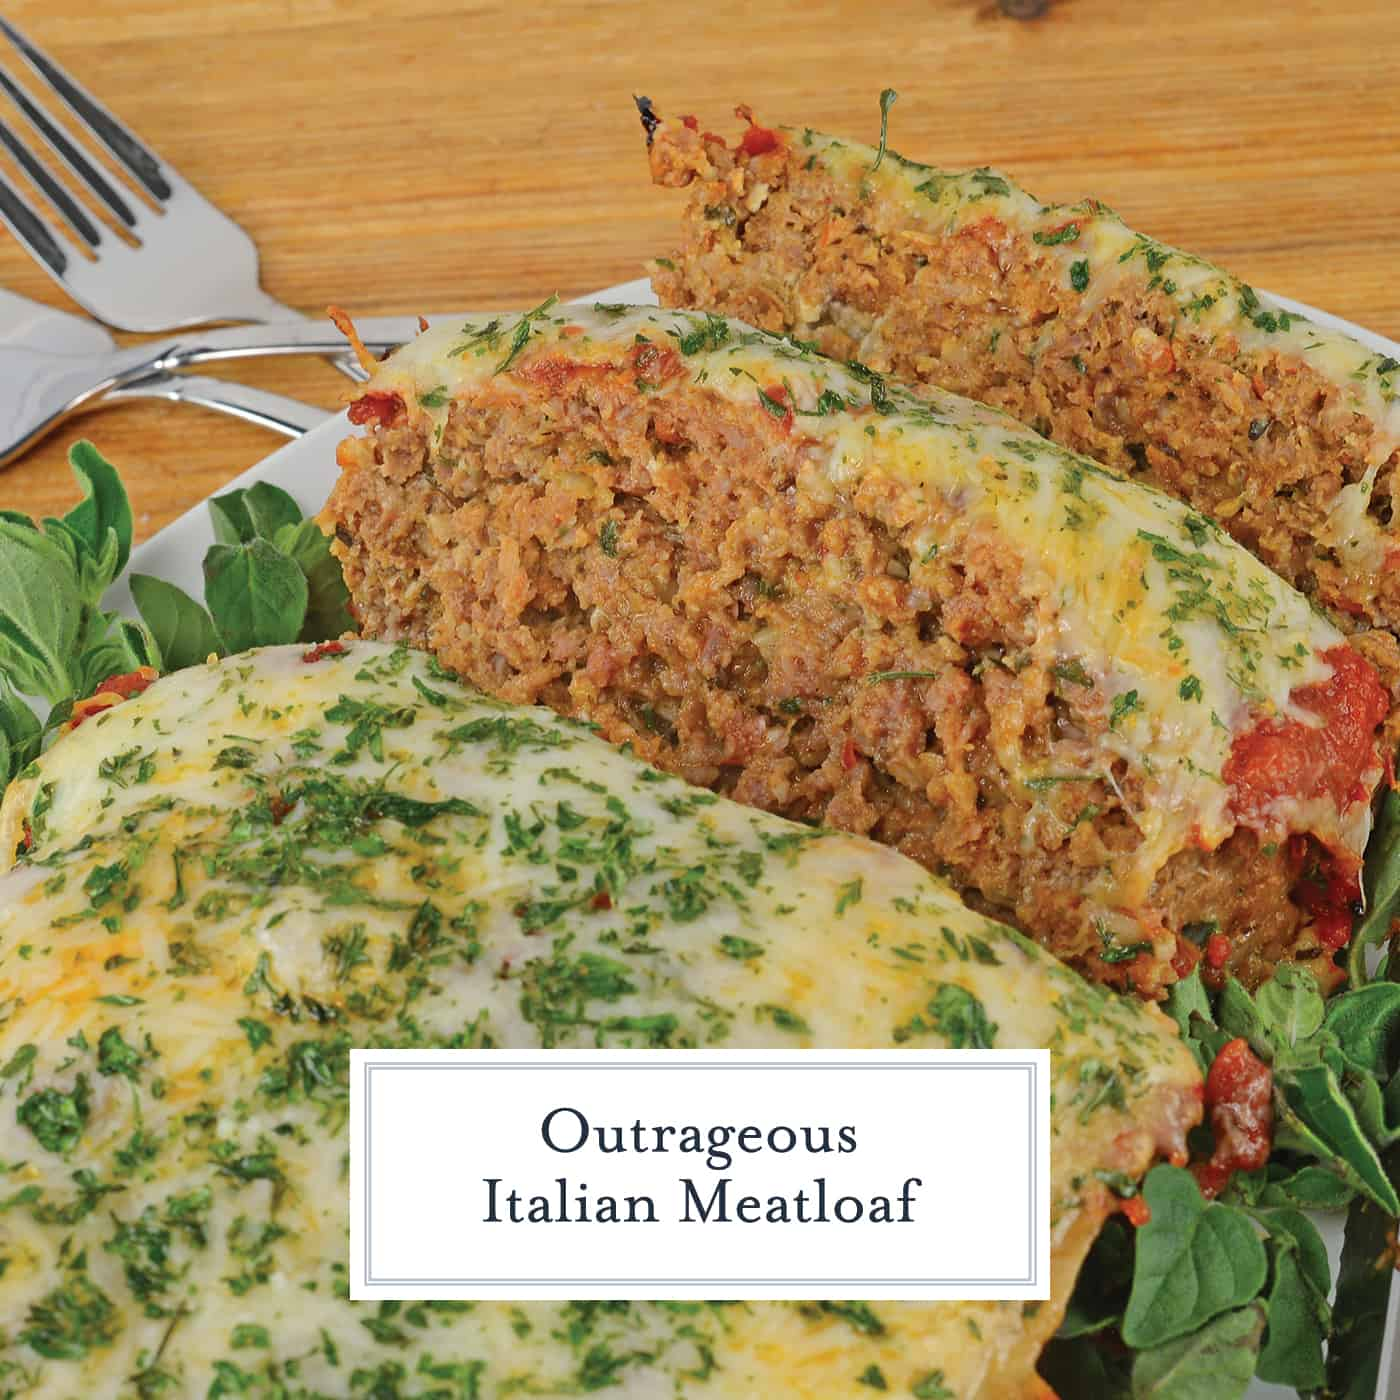 Italian Meatloaf blends Italian sausage and ground beef with spices and cheese for a tender one dish meal. The perfect family meal! #bestmeatloafrecipes #italianmeatloaf www.savoryexperiments.com